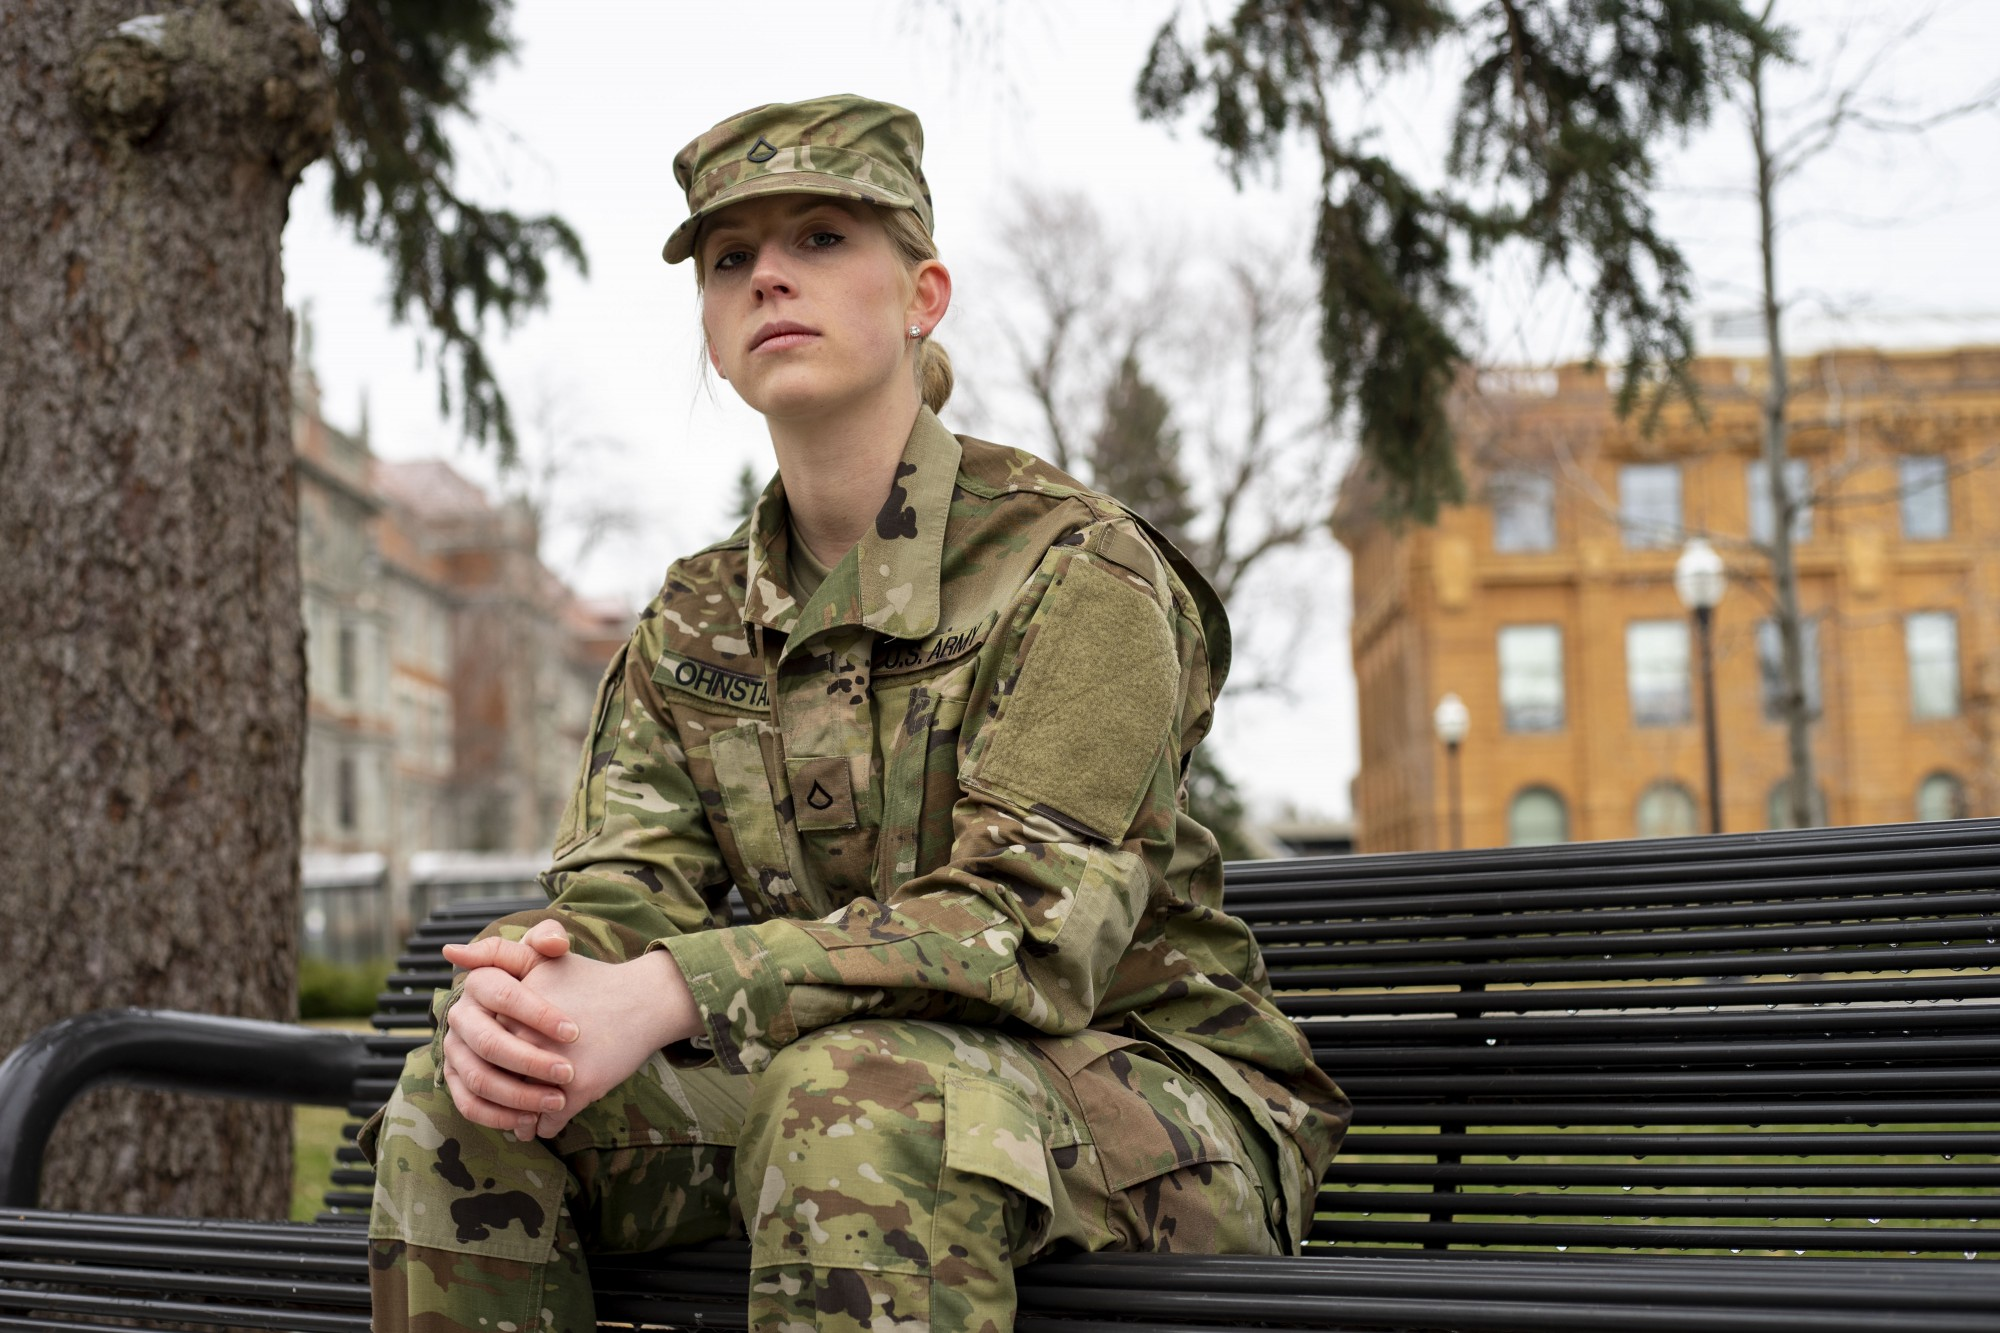 Senior Violet Ohnstad poses for a portrait on campus on Friday, April 3. Ohnstad, who enlisted in the National Guard in January, is uncertain what the next few months will look like as she prepares for basic training.